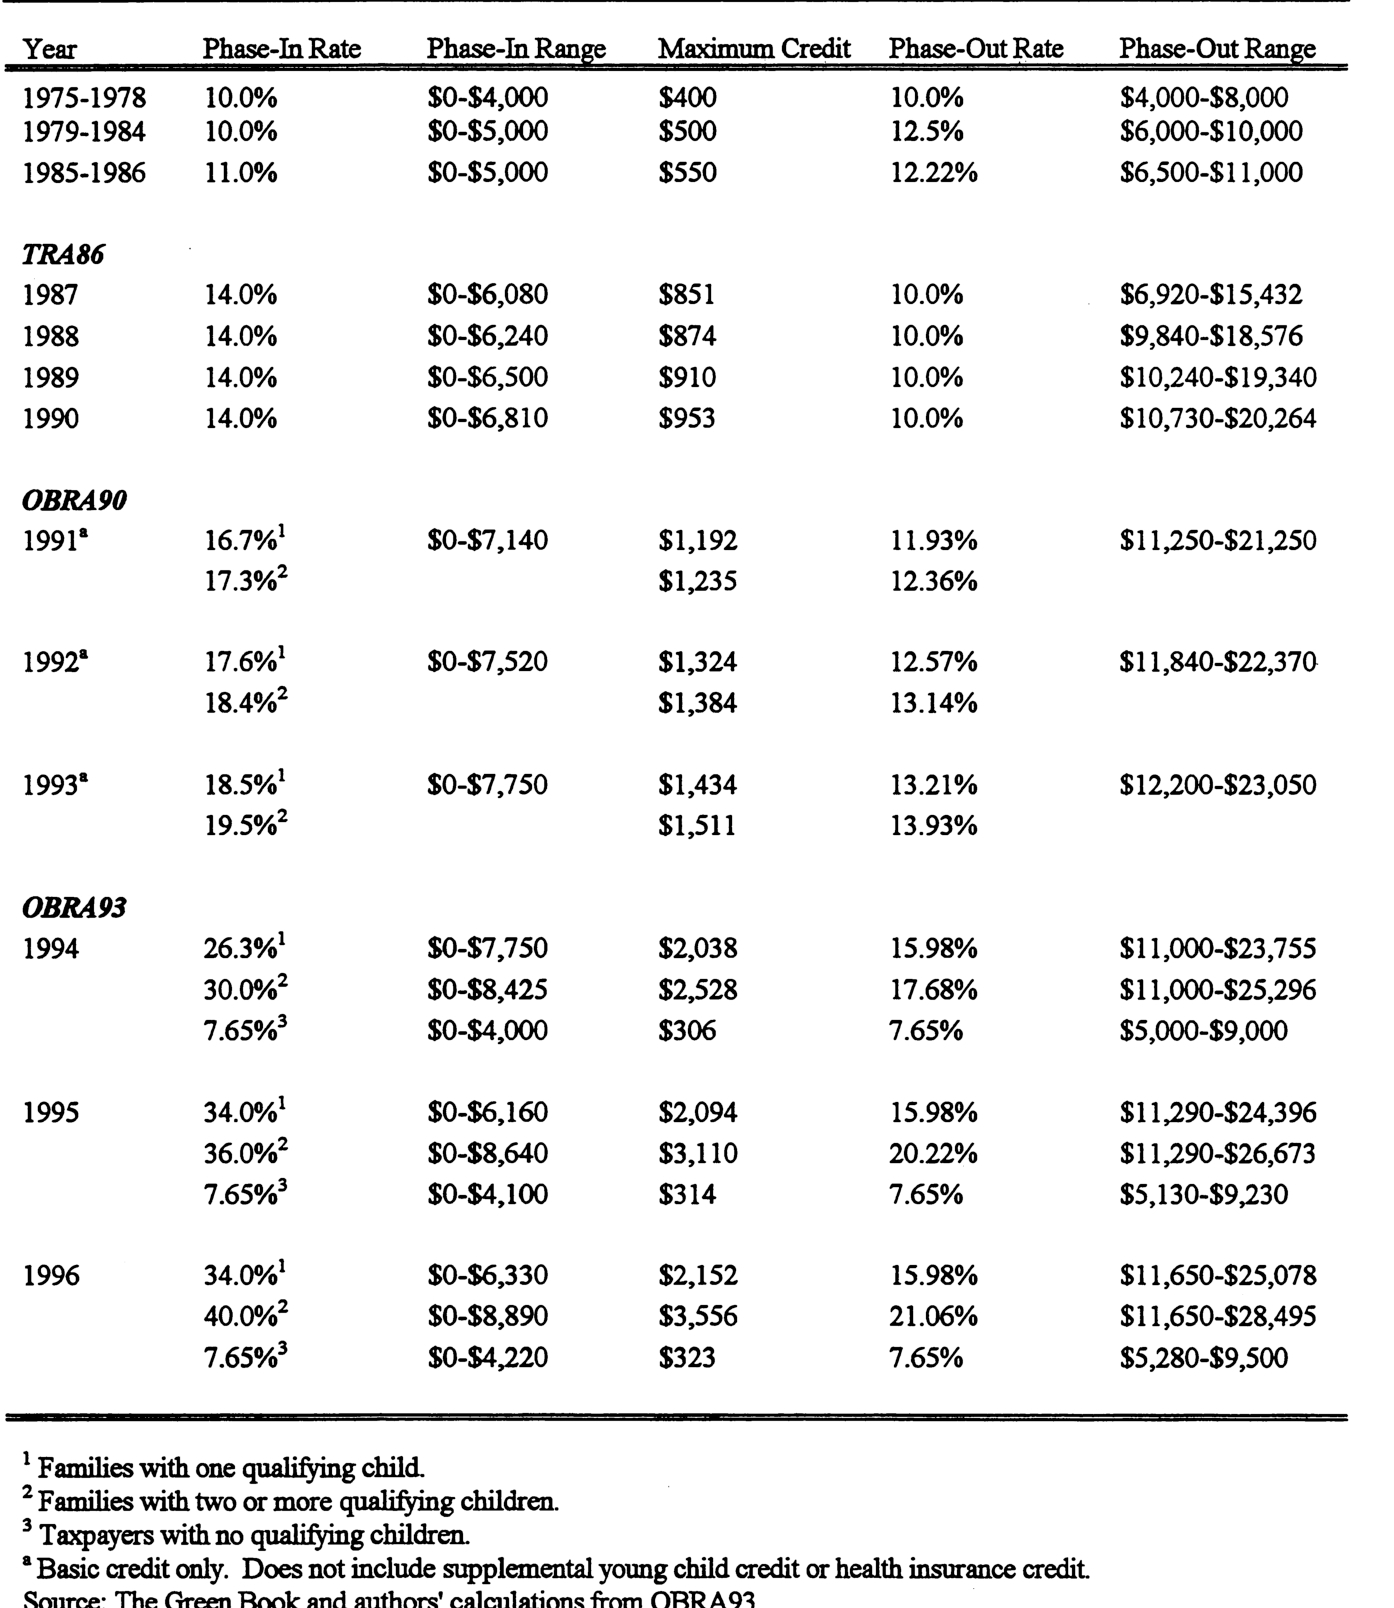 Table 1 From The Earned Income Tax Credit And The Labor